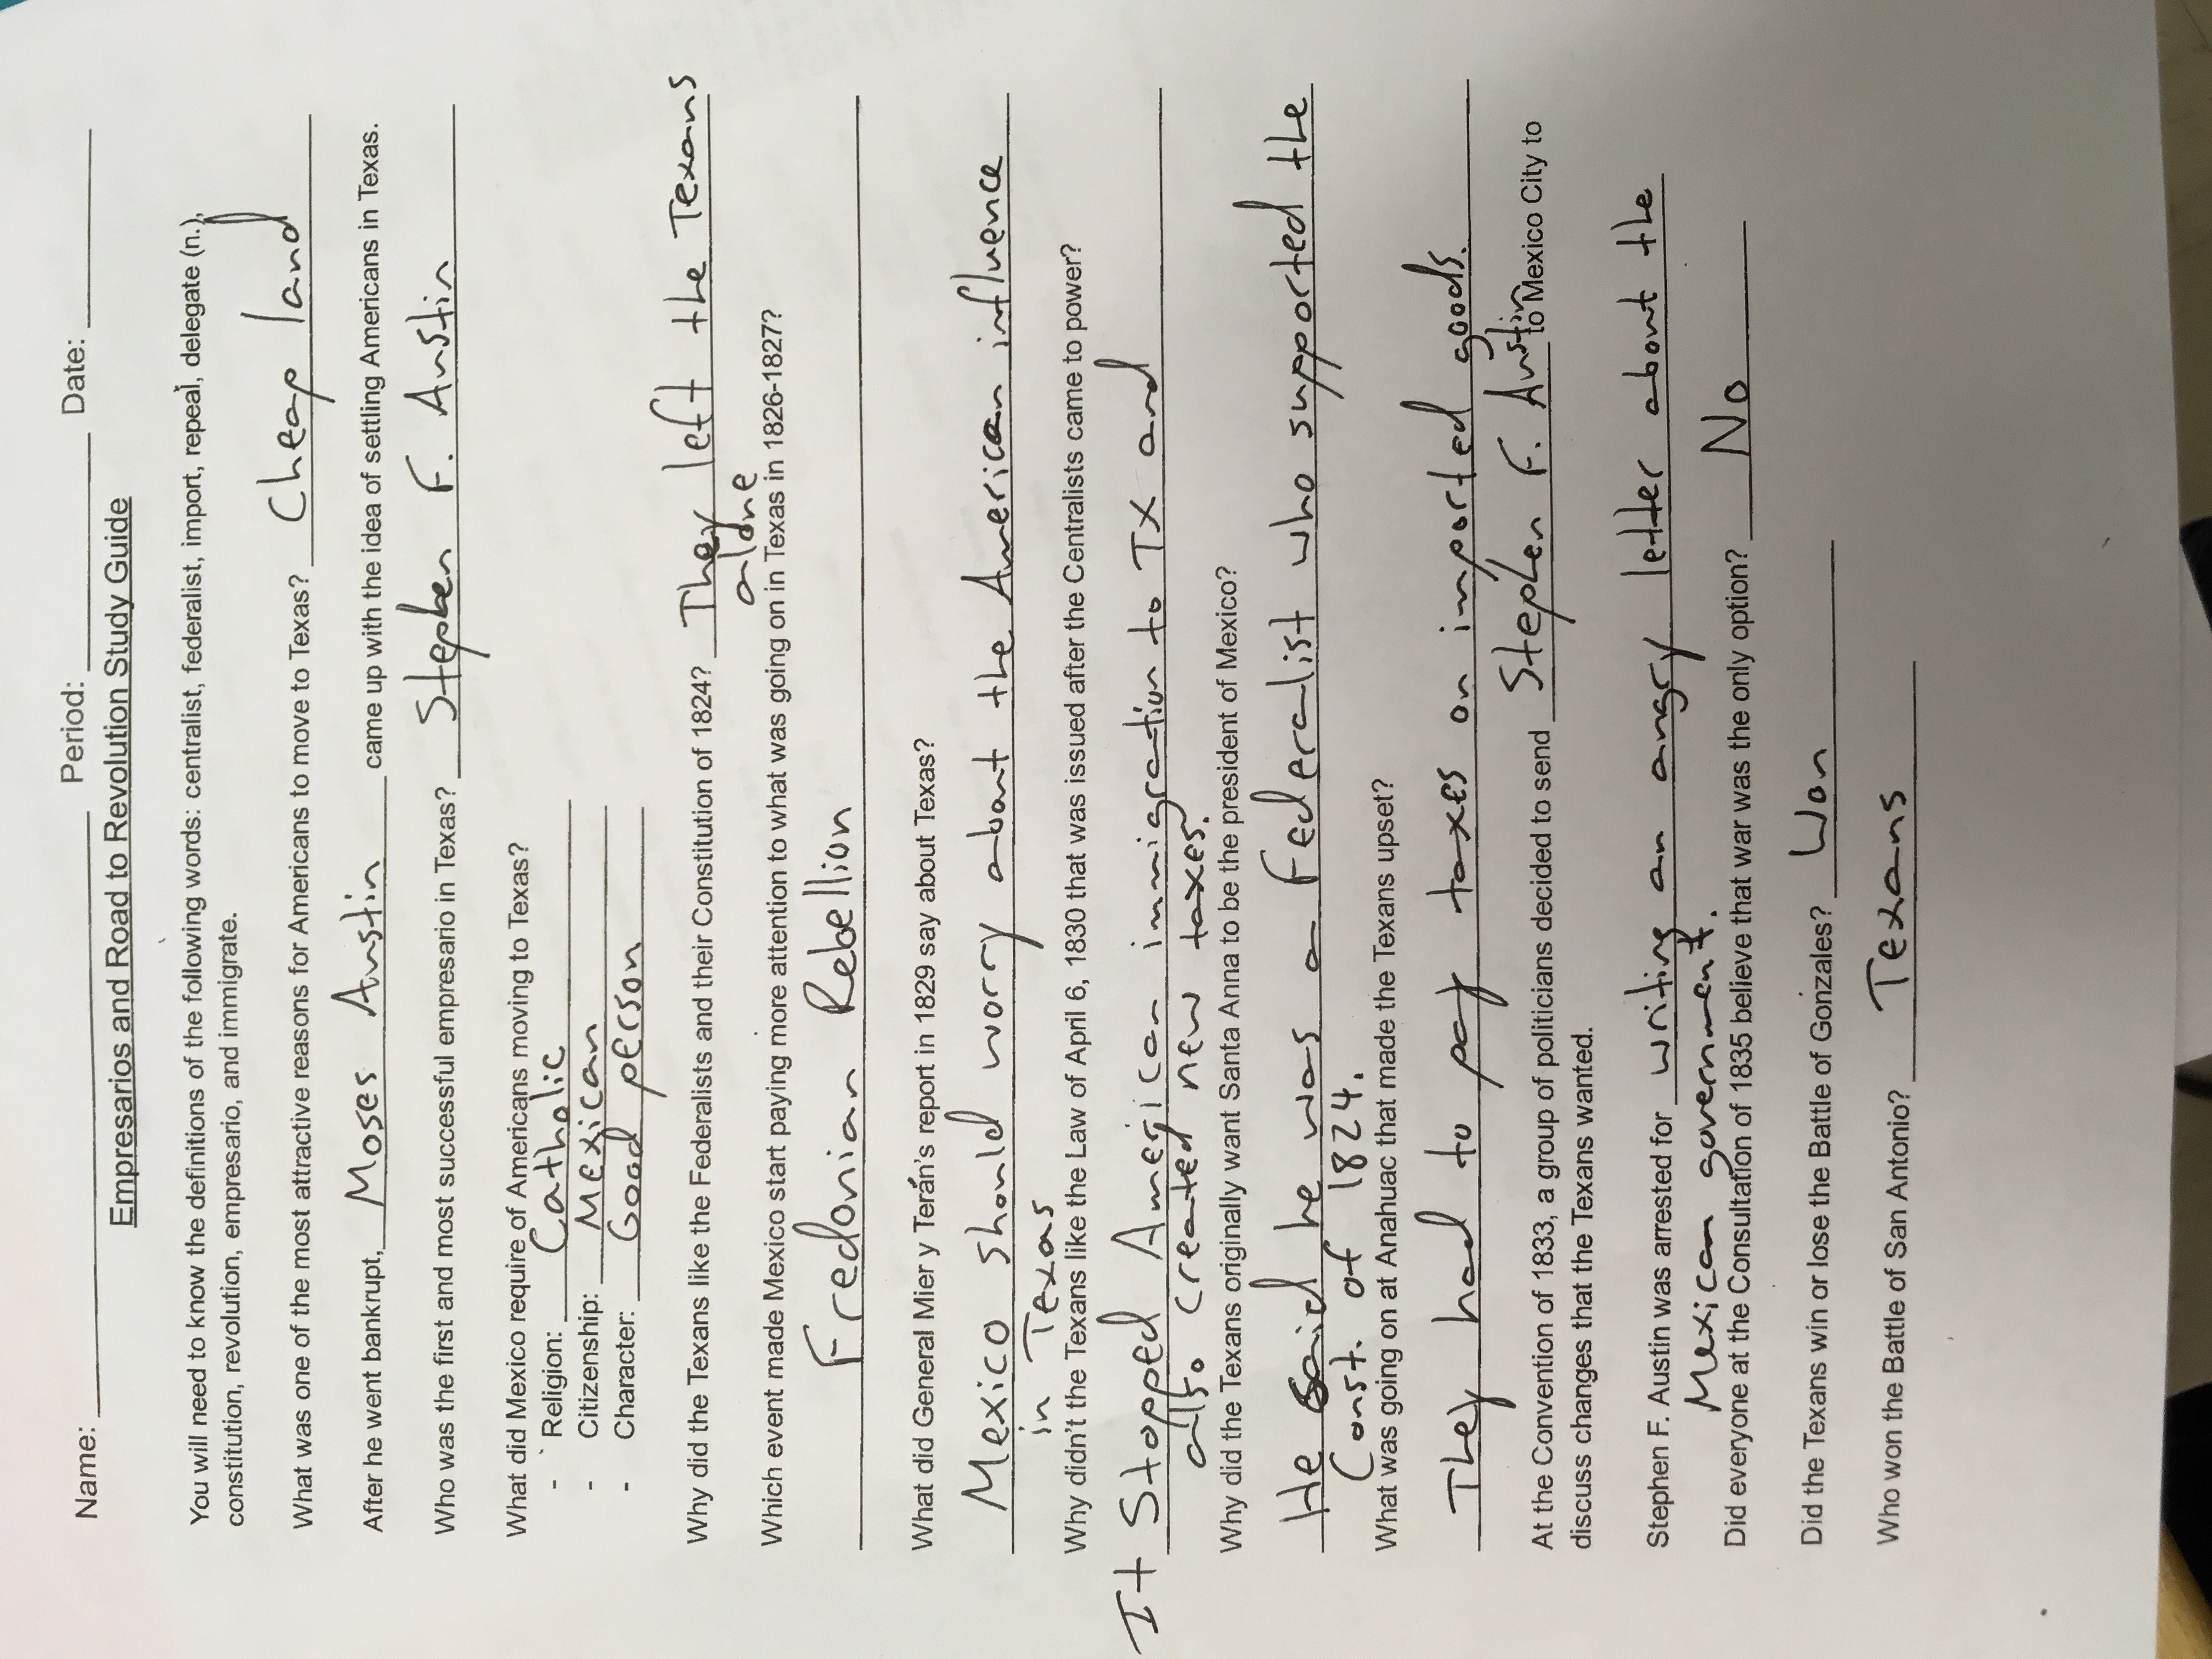 ... Answers for Empresarios and Road to Revolution Study Guide.